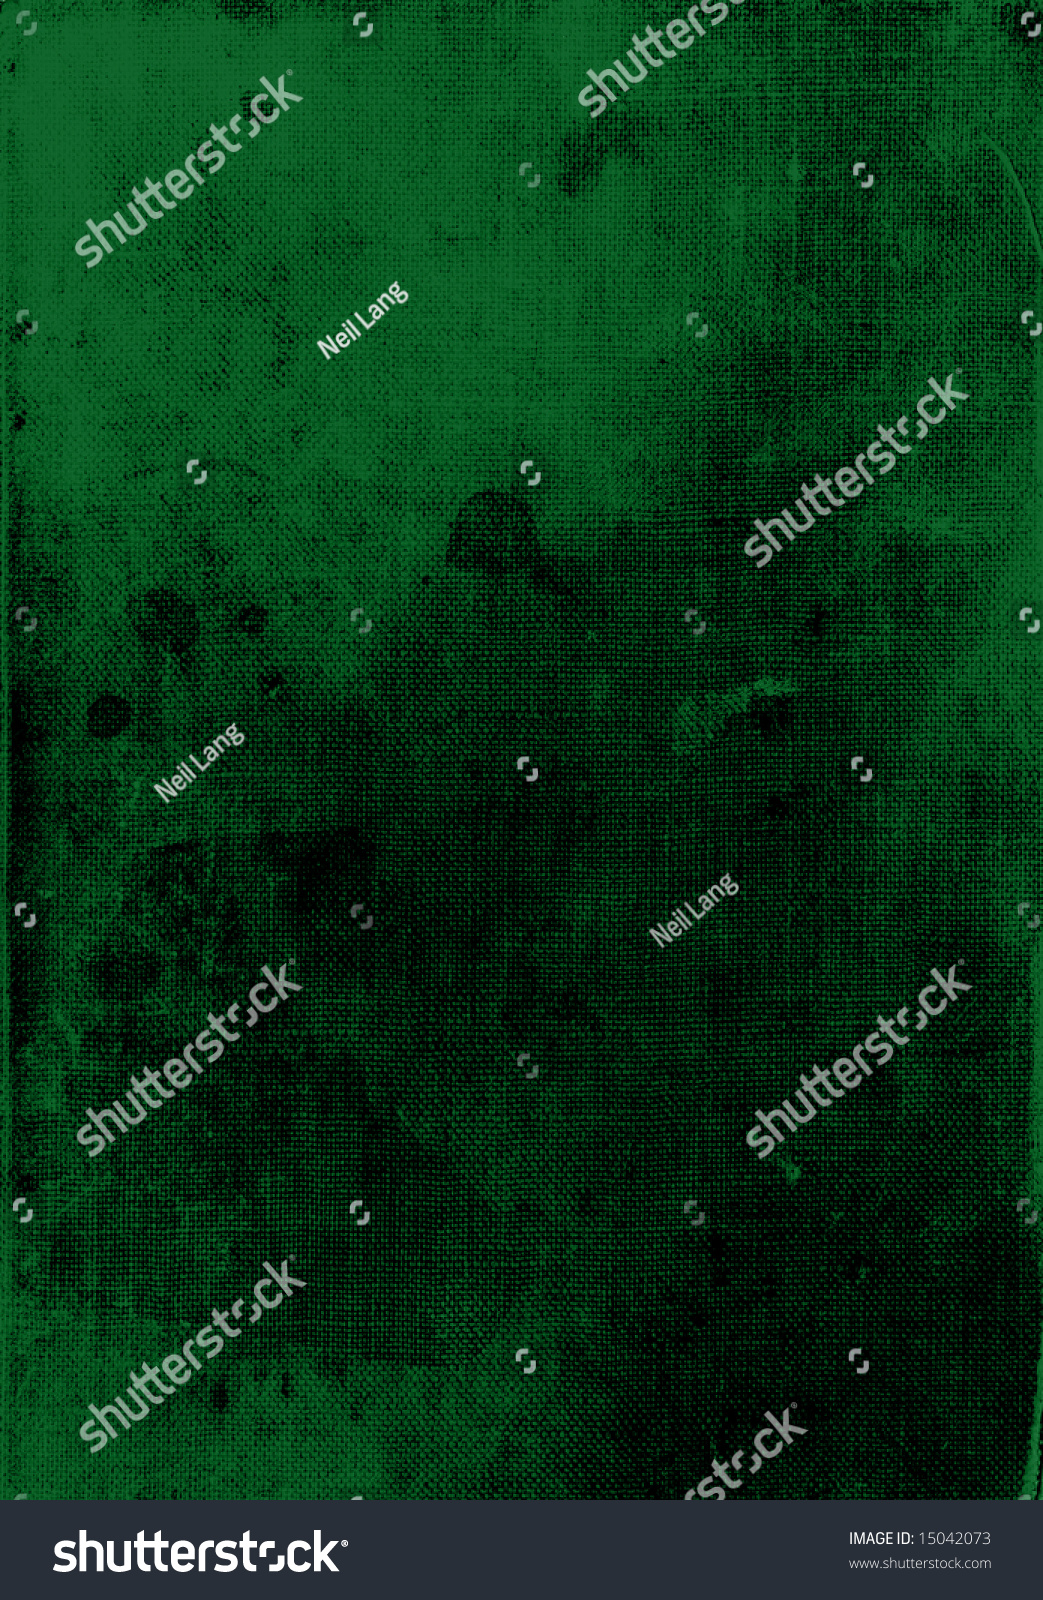 Green Book Cover Background : Dark green leather book cover background texture with spot